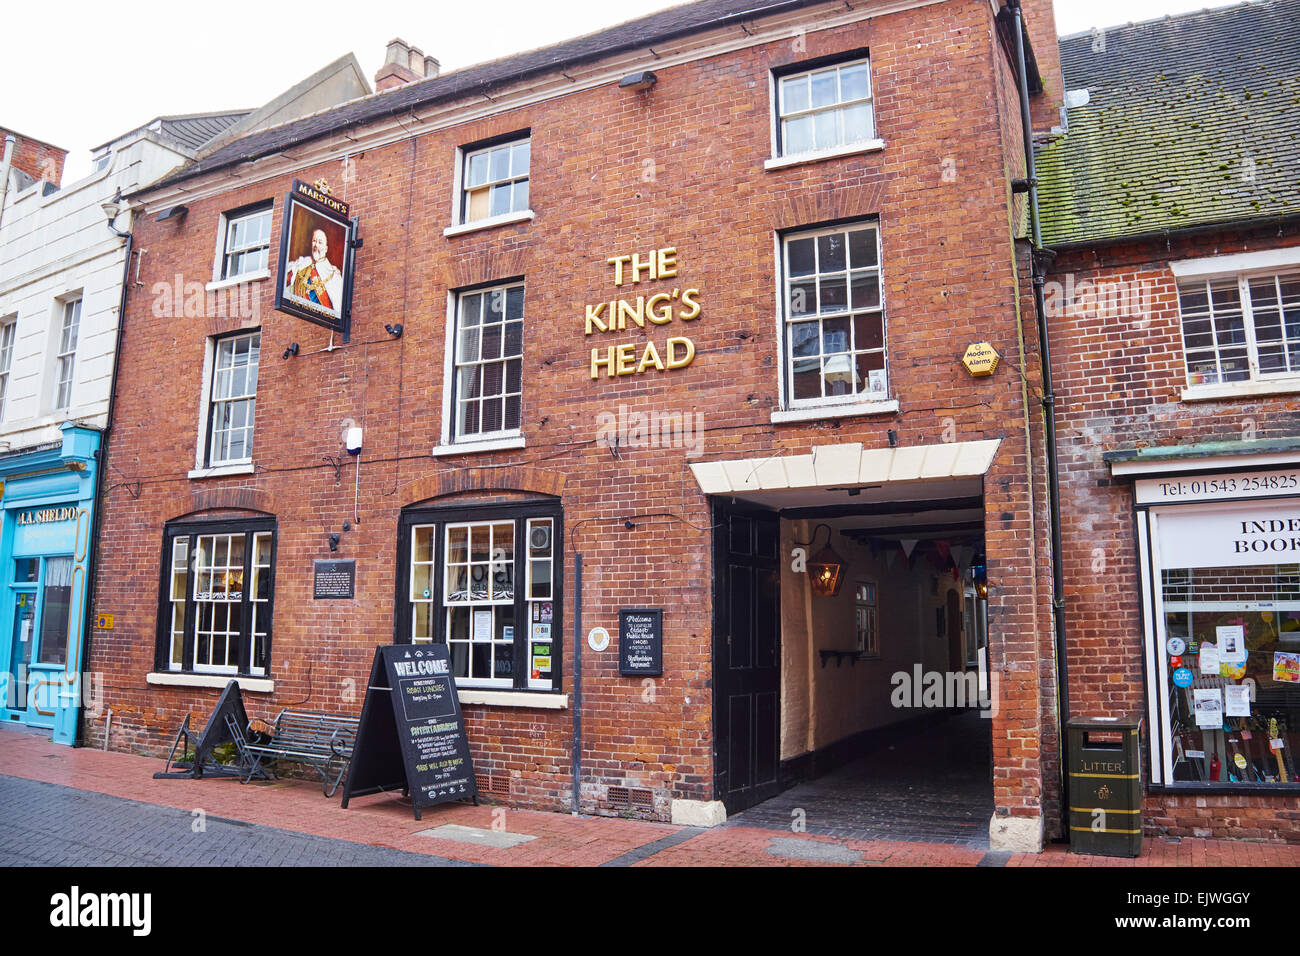 The Kings Head The Oldest Pub And Birthplace Of The Staffordshire Regiment Bird Street Lichfield Staffordshire UK - Stock Image